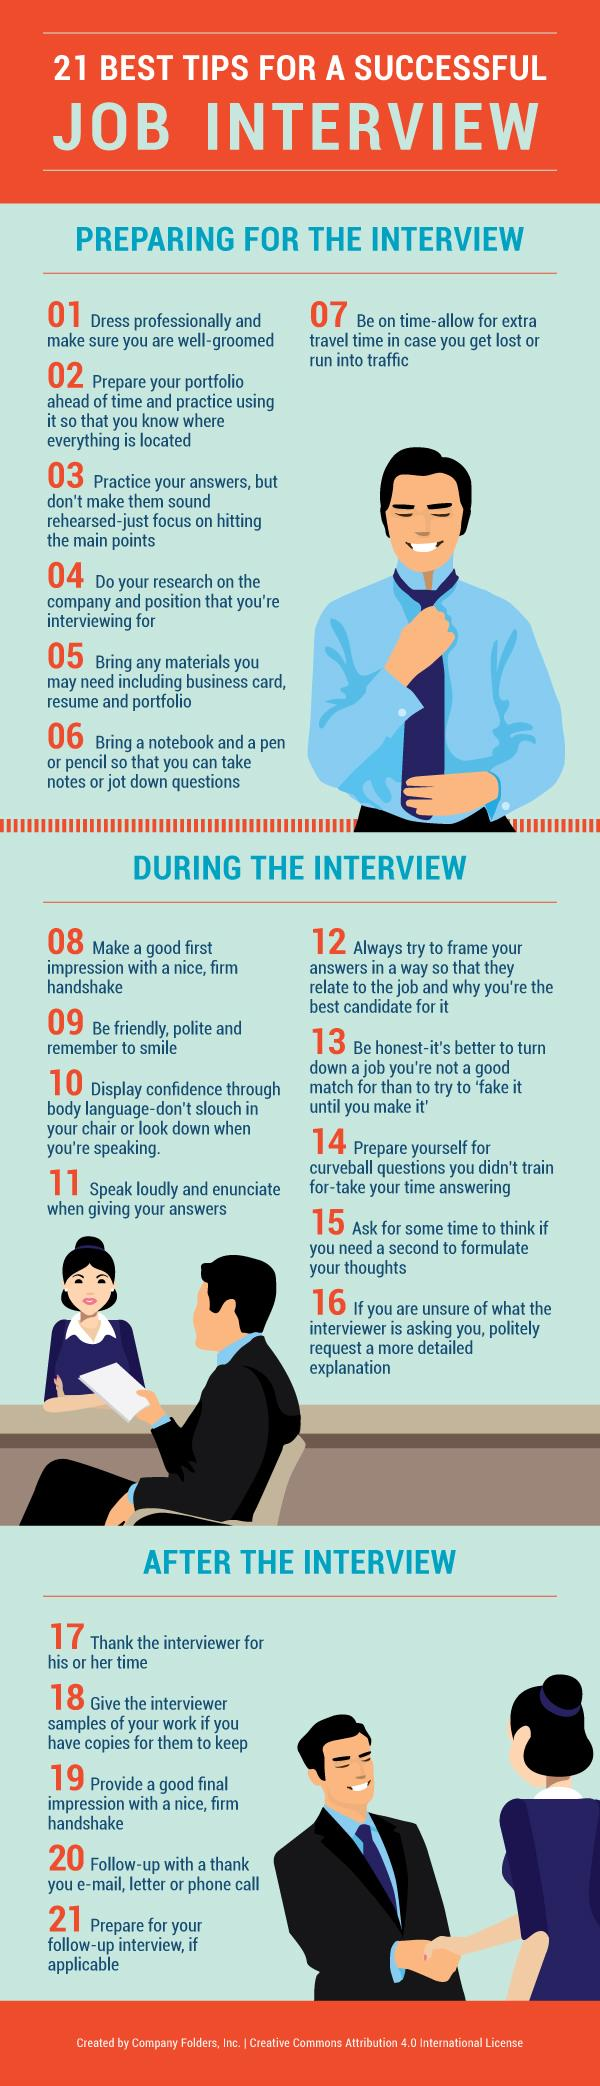 best-tips-for-successful-job-interview